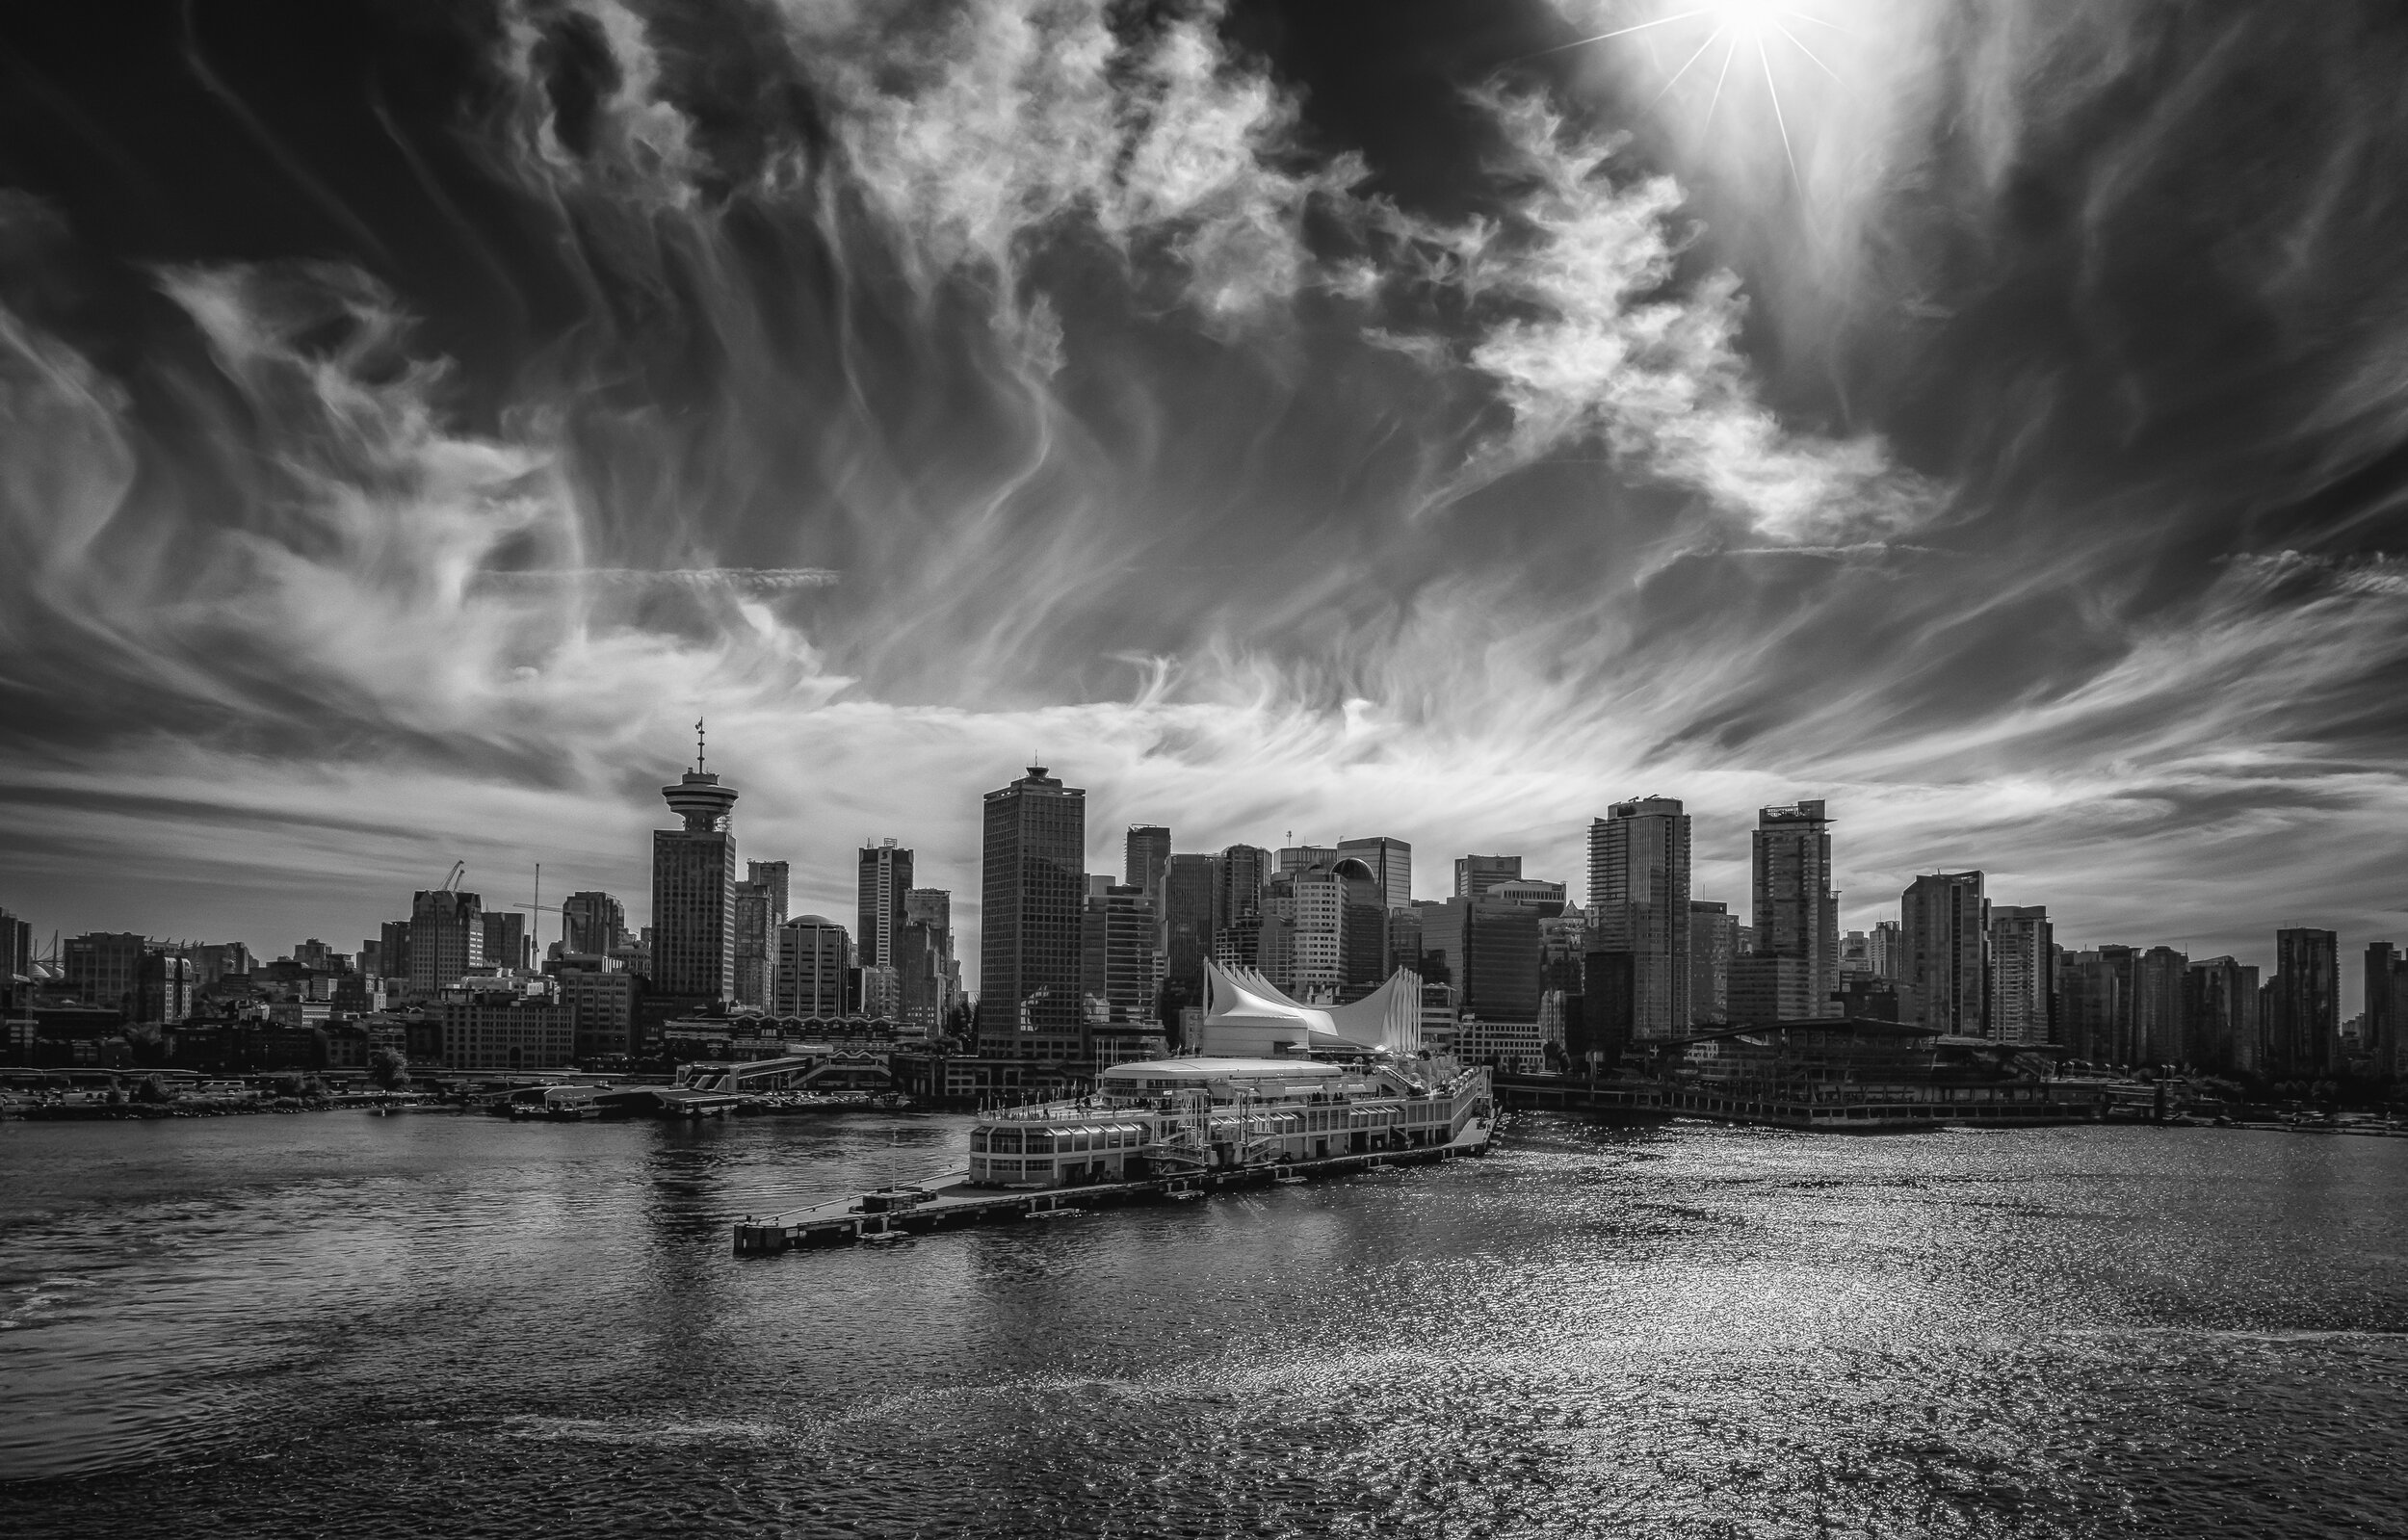 Vancouver - Fujifilm XT-3, 1/500 @ f/11, ISO 160, 16mm. This a shot of the Vancouver skyline as our cruise ship pulled away from the port facility in the center foreground. I used a wide-angle lens with a polarizer and I was rewarded with a fabulous sky! I added the star effect in post.